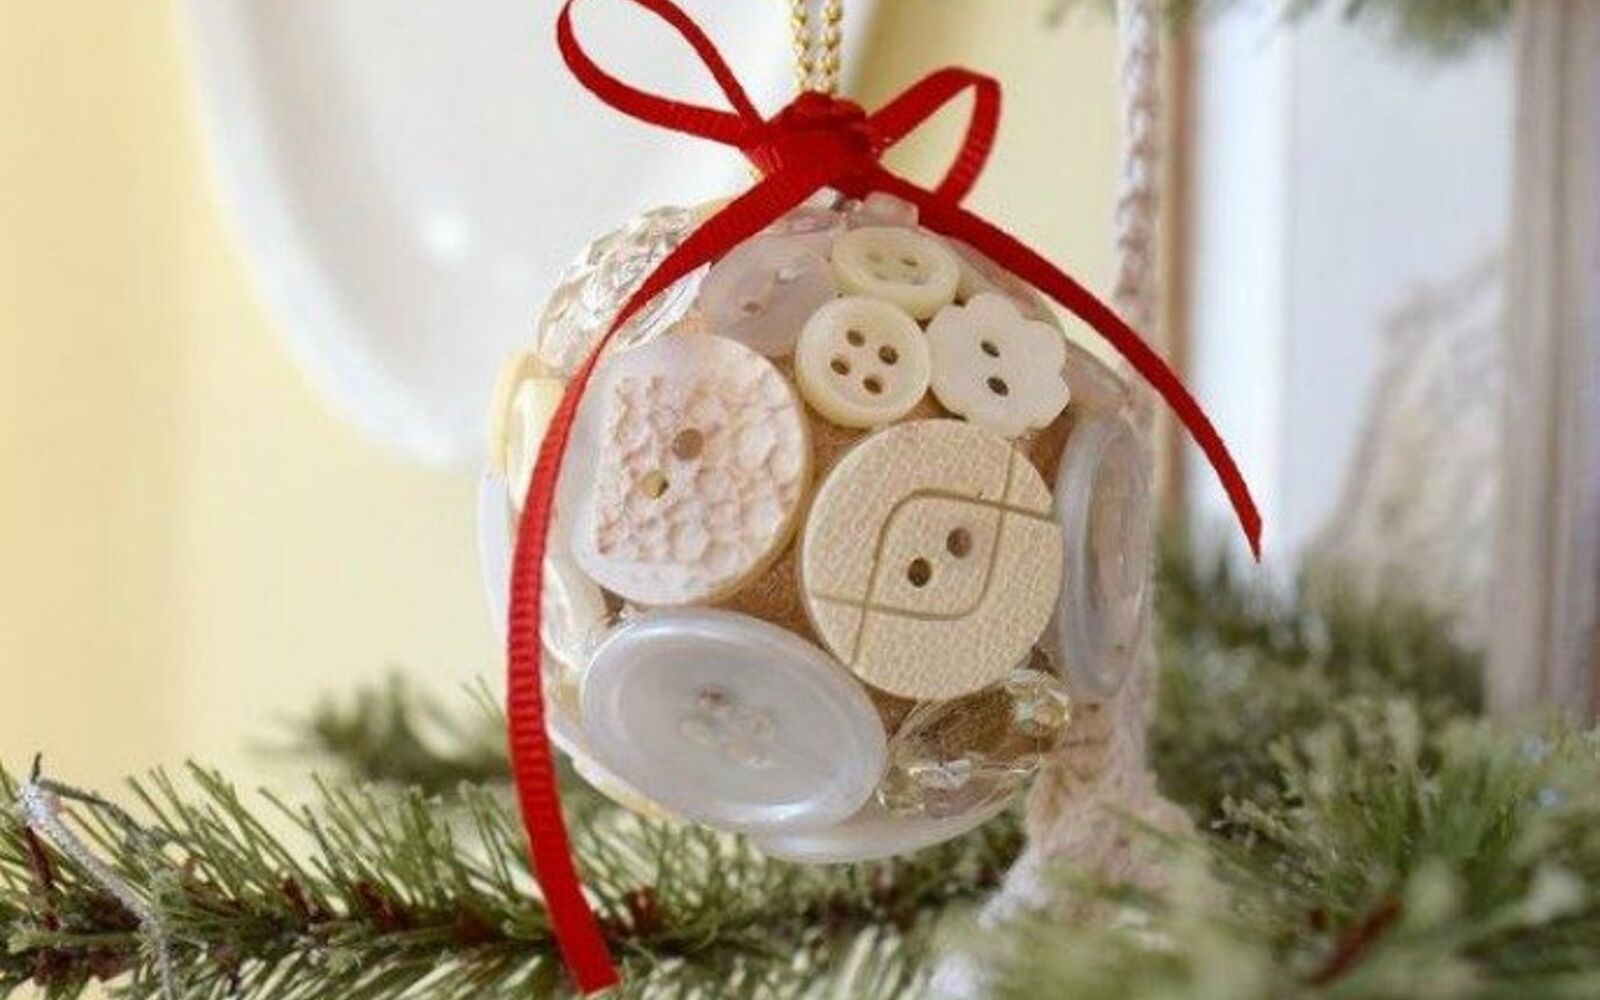 s 15 quick and easy gift ideas using buttons, Or spice up your plain and boring ornaments